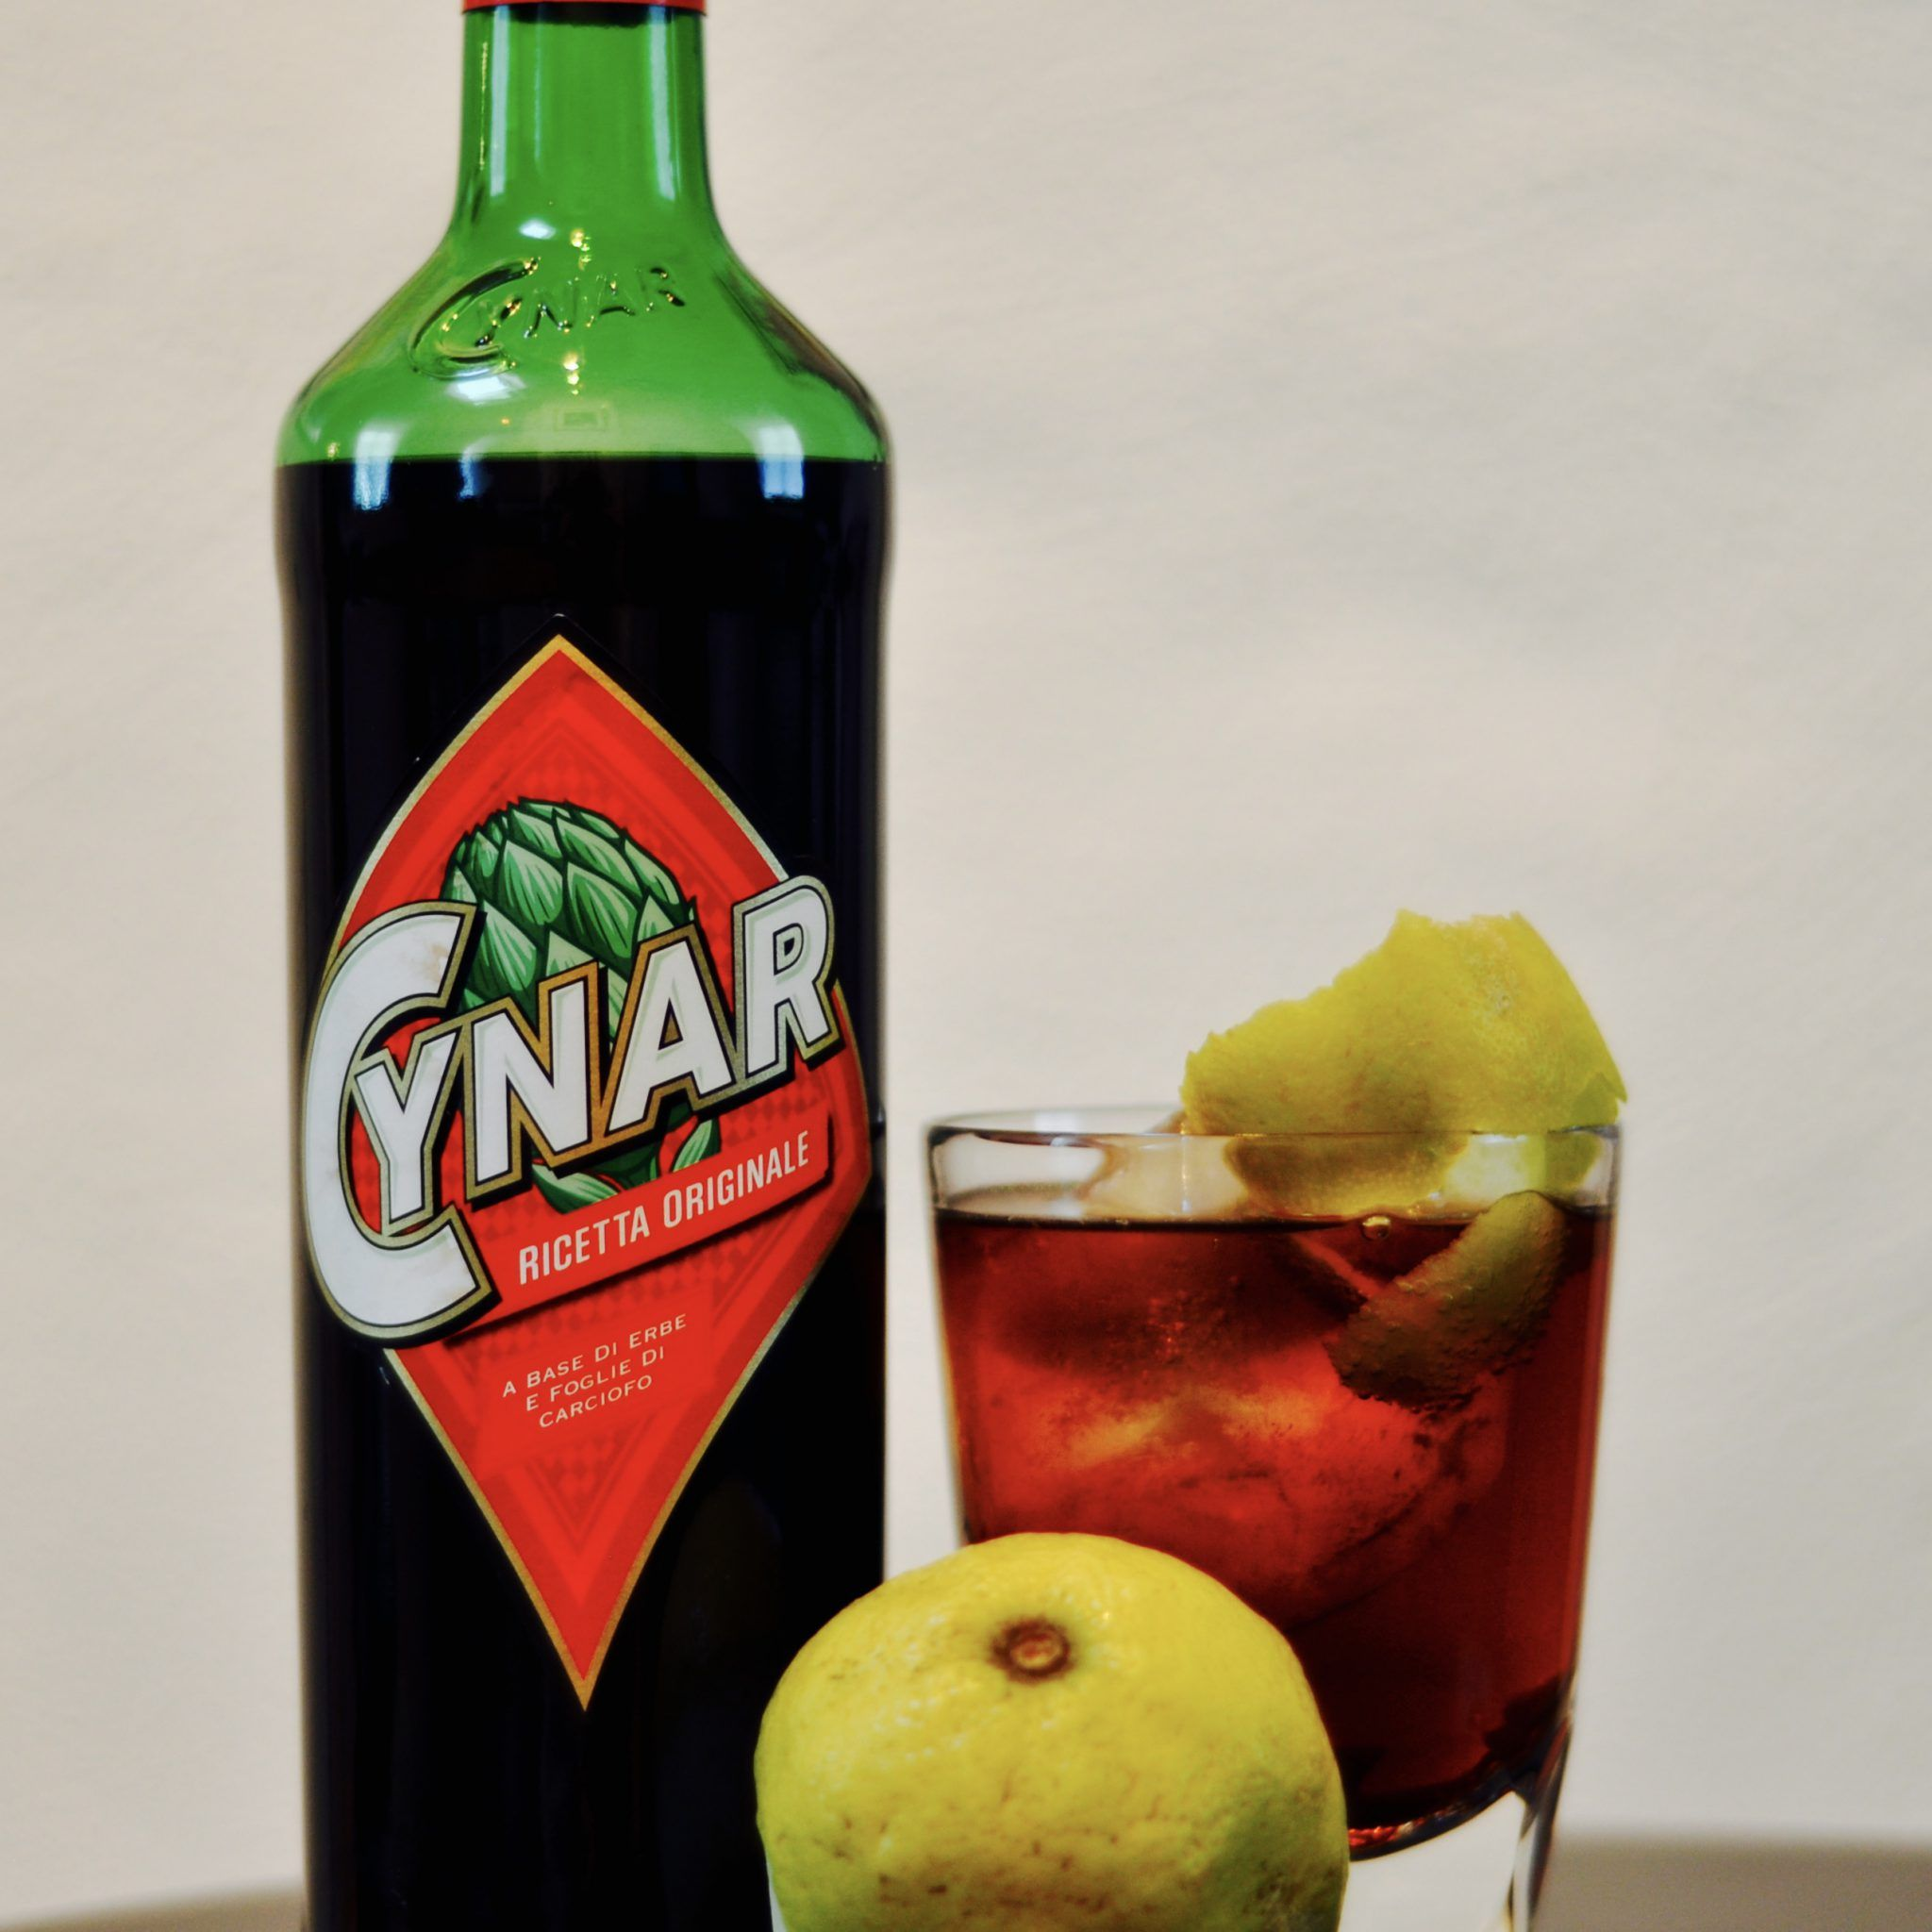 DSC 0247 A bottle of Cynar